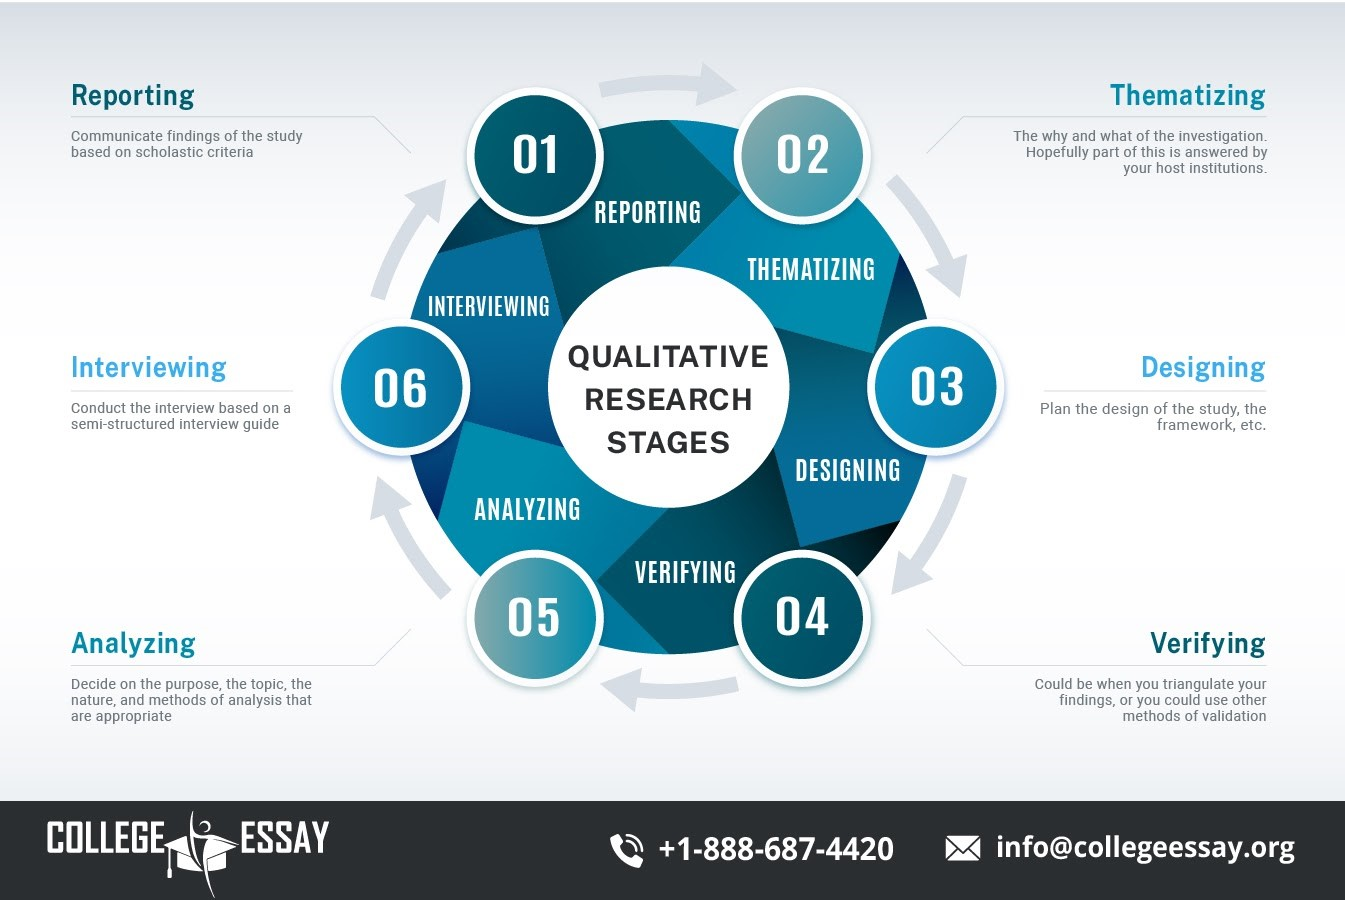 qualitative research stages